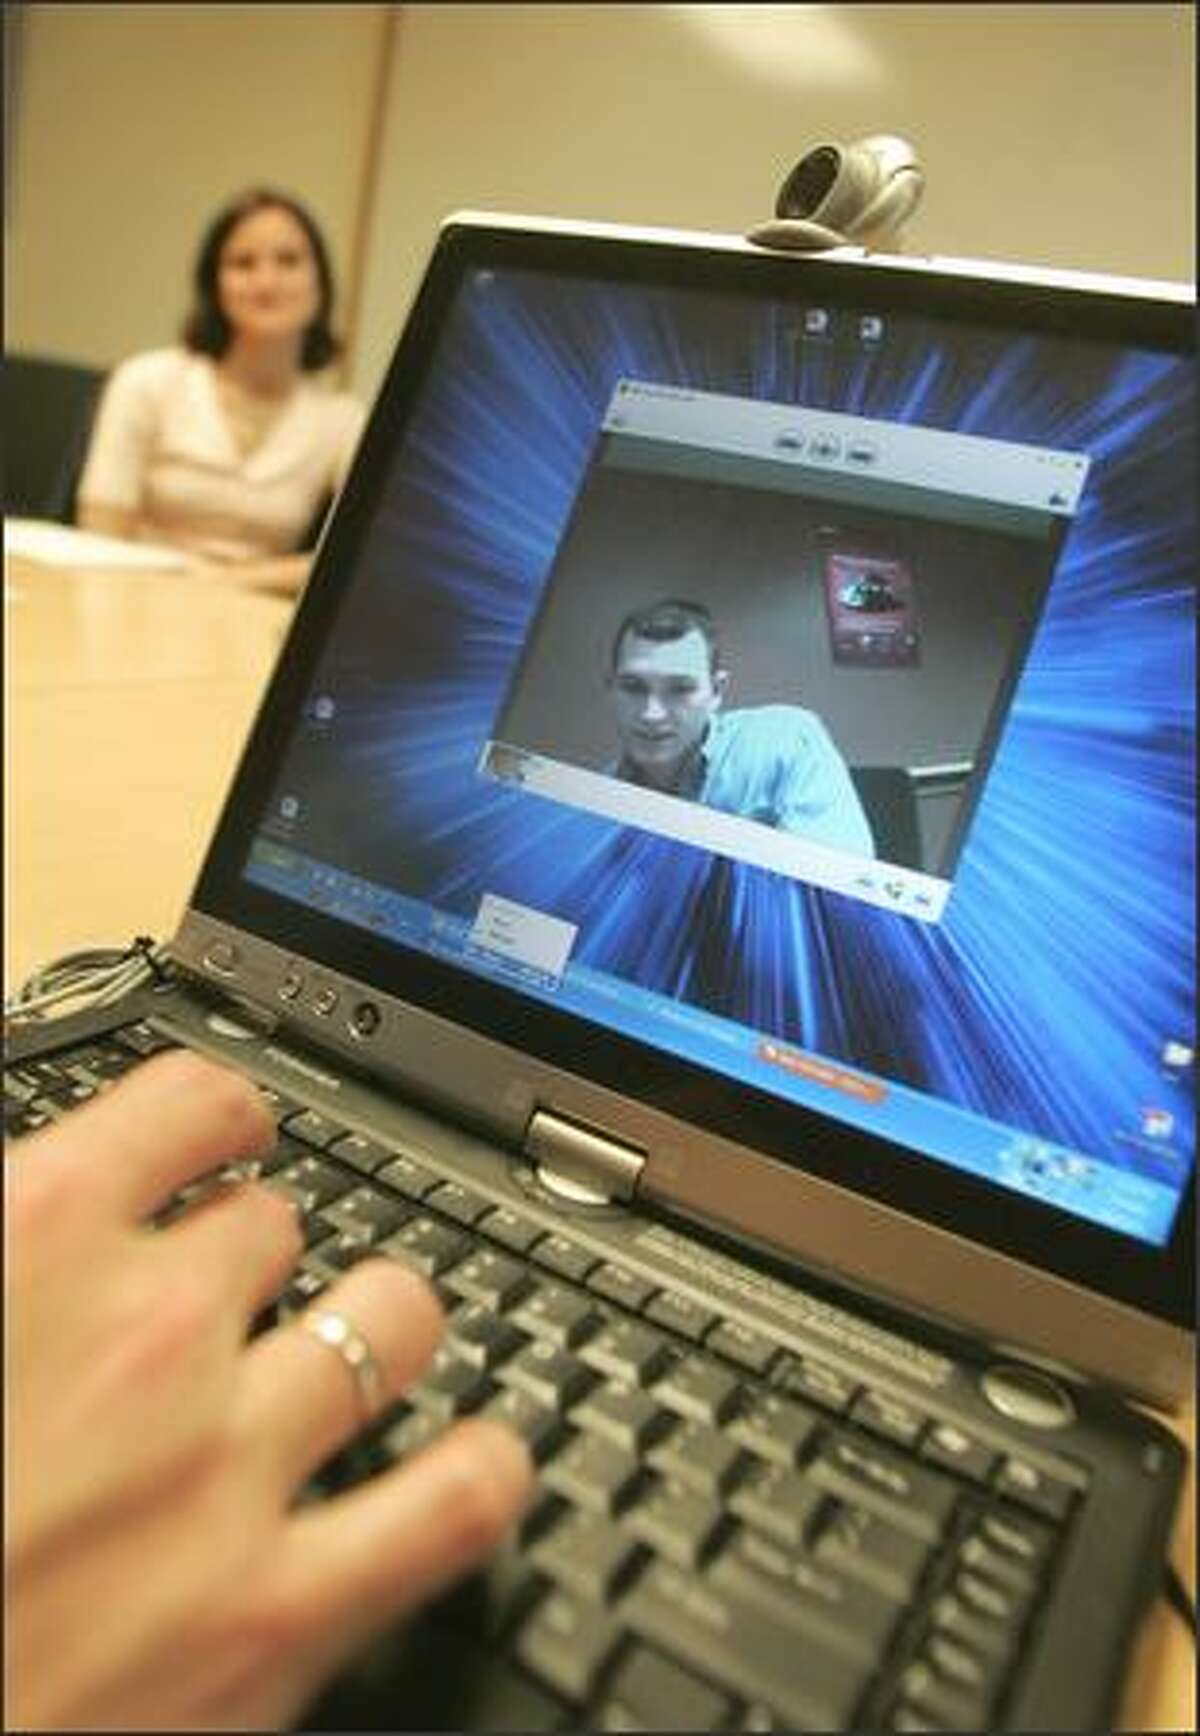 Michael Cowan, product marketing manager for Microsoft Hardware, demonstrates a Webcam the company is creating.